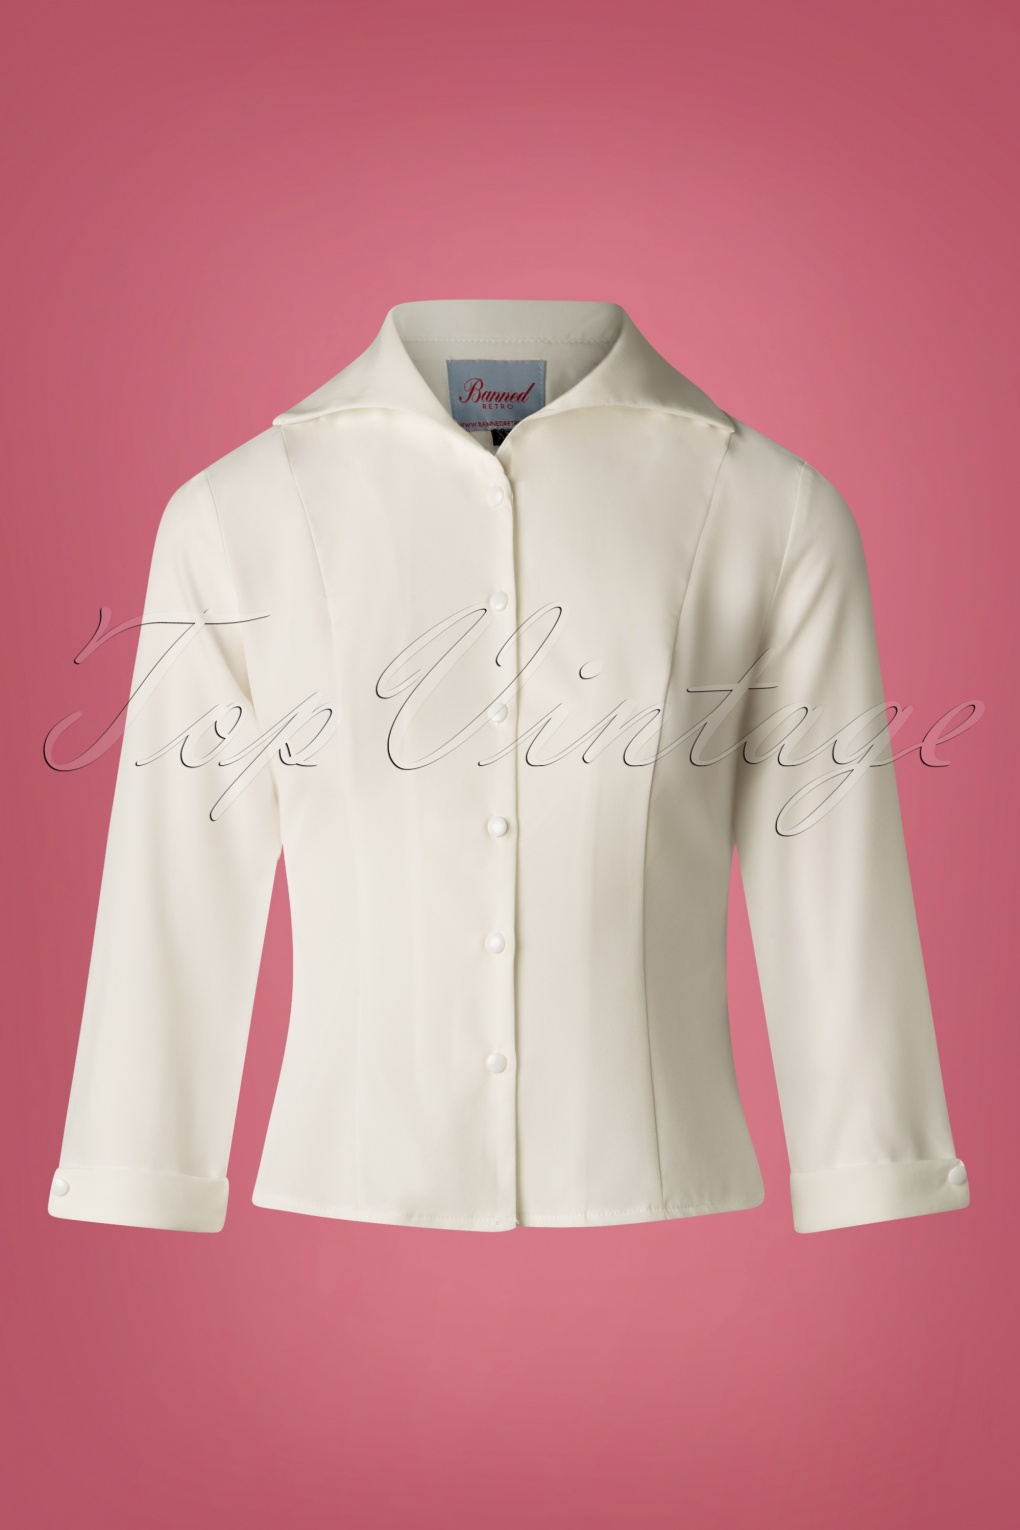 1950s Rockabilly & Pin Up Tops, Blouses, Shirts 50s Janine Blouse in Off White £24.56 AT vintagedancer.com